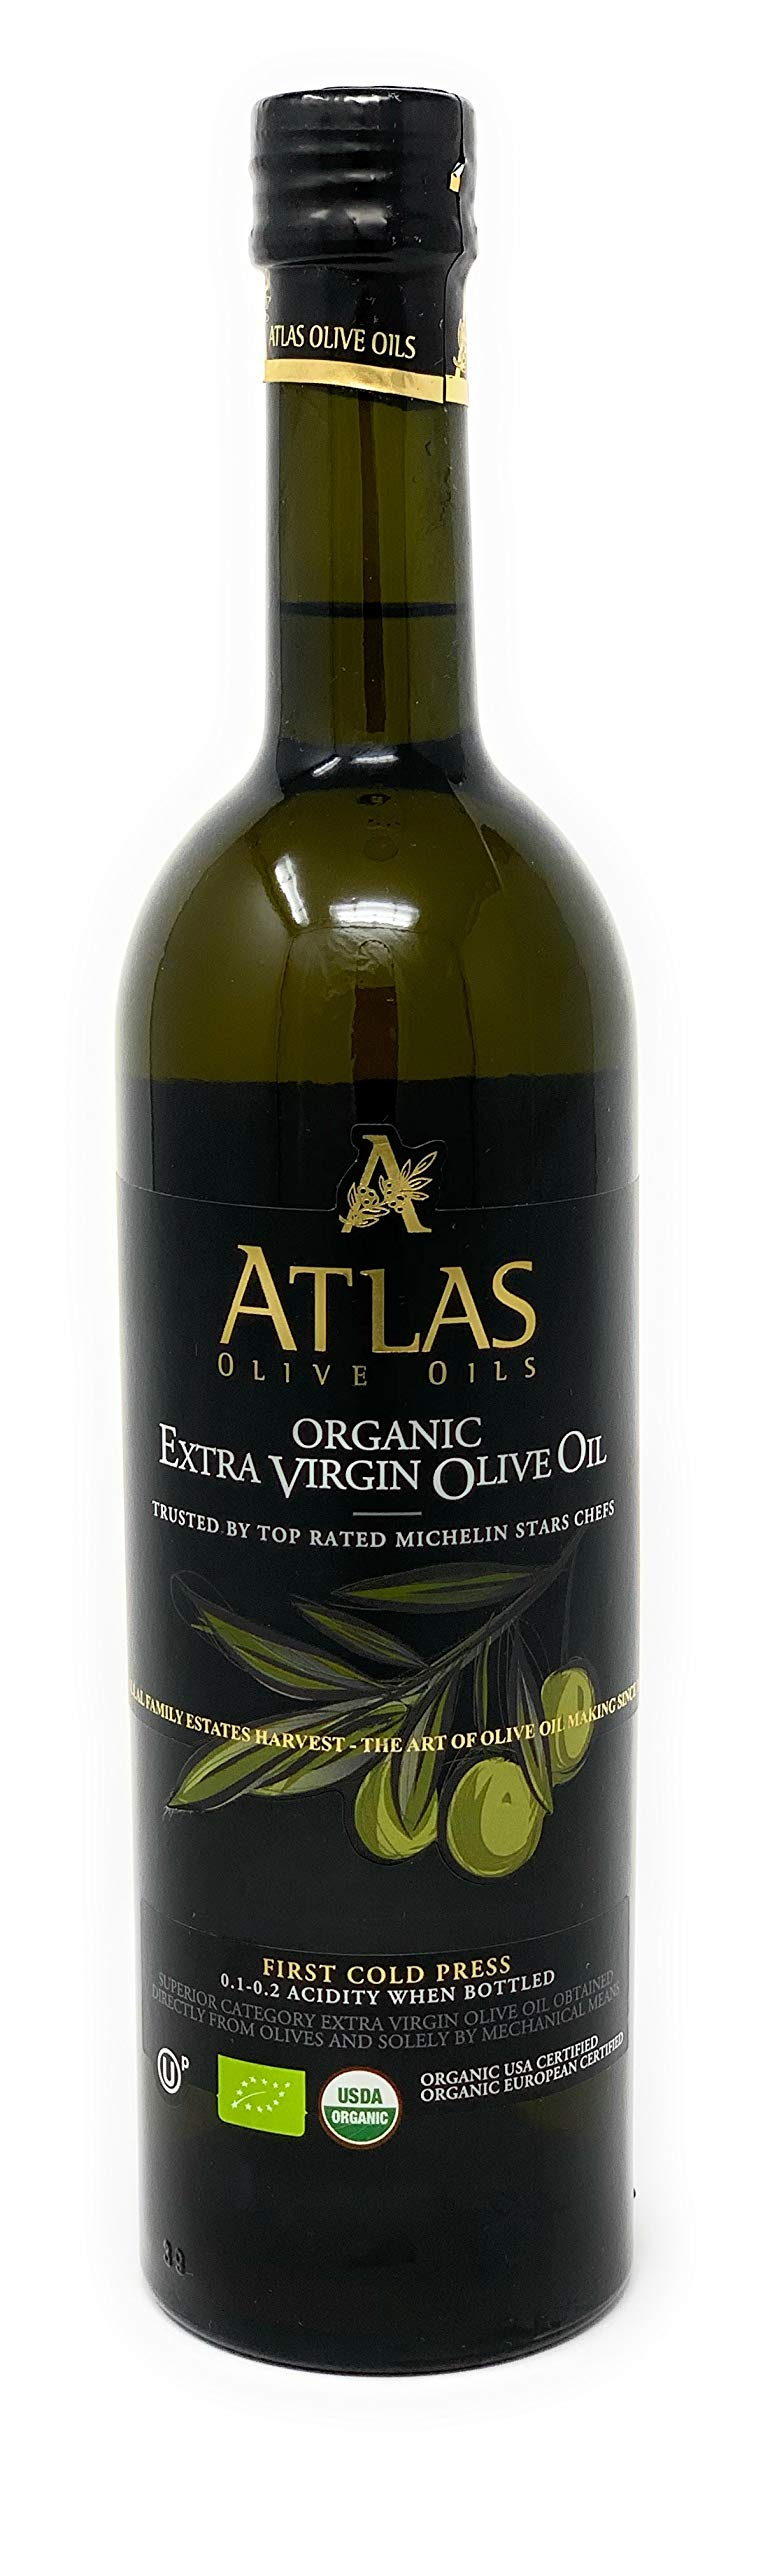 Organic Extra Virgin Olive Oil: First Cold Pressed EVOO Trusted by Top Rated Michelin Stars Chefs for cooking, Organic USA Certified, Organic European Certified, 0.1-.2 Acidity from olives in Morocco